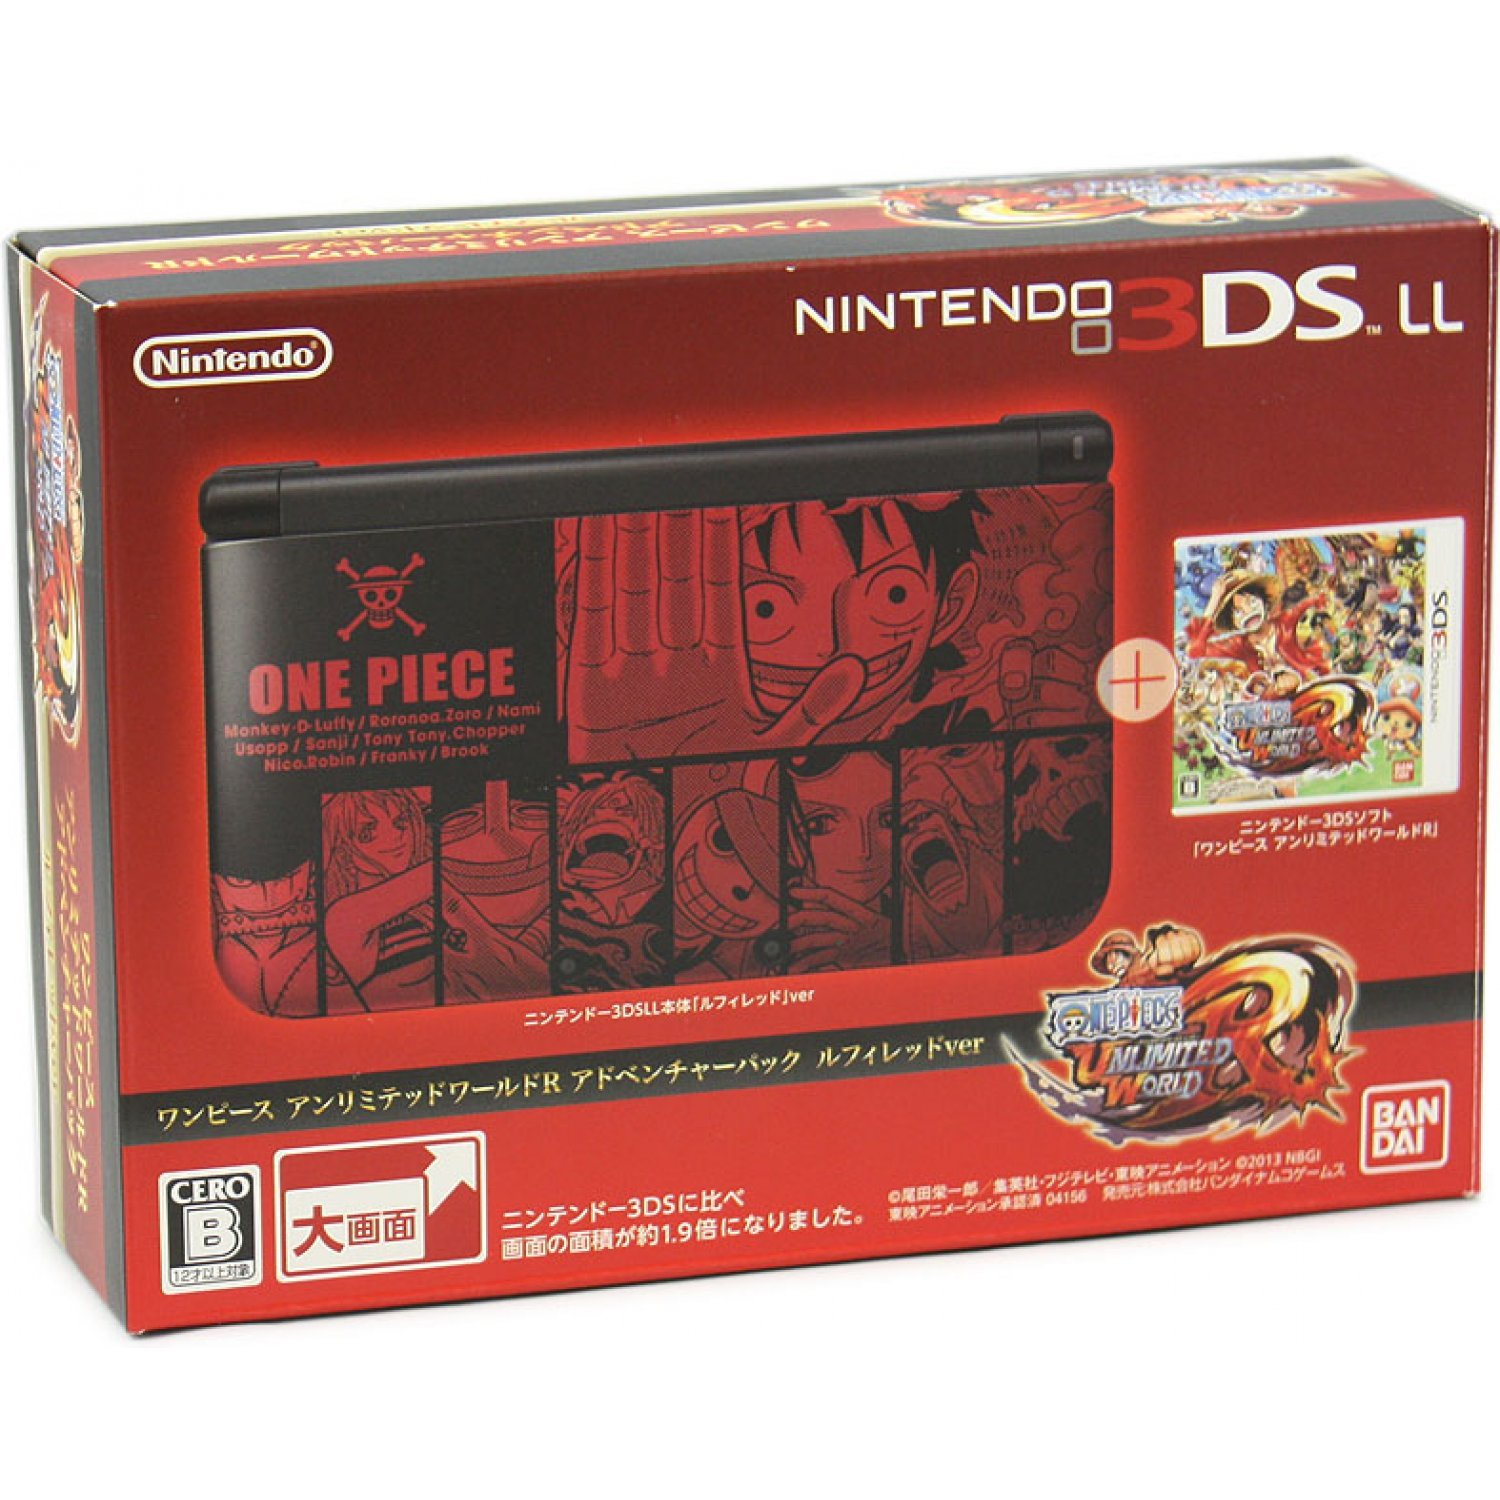 One Piece Nds: One Piece Unlimited World R Limited